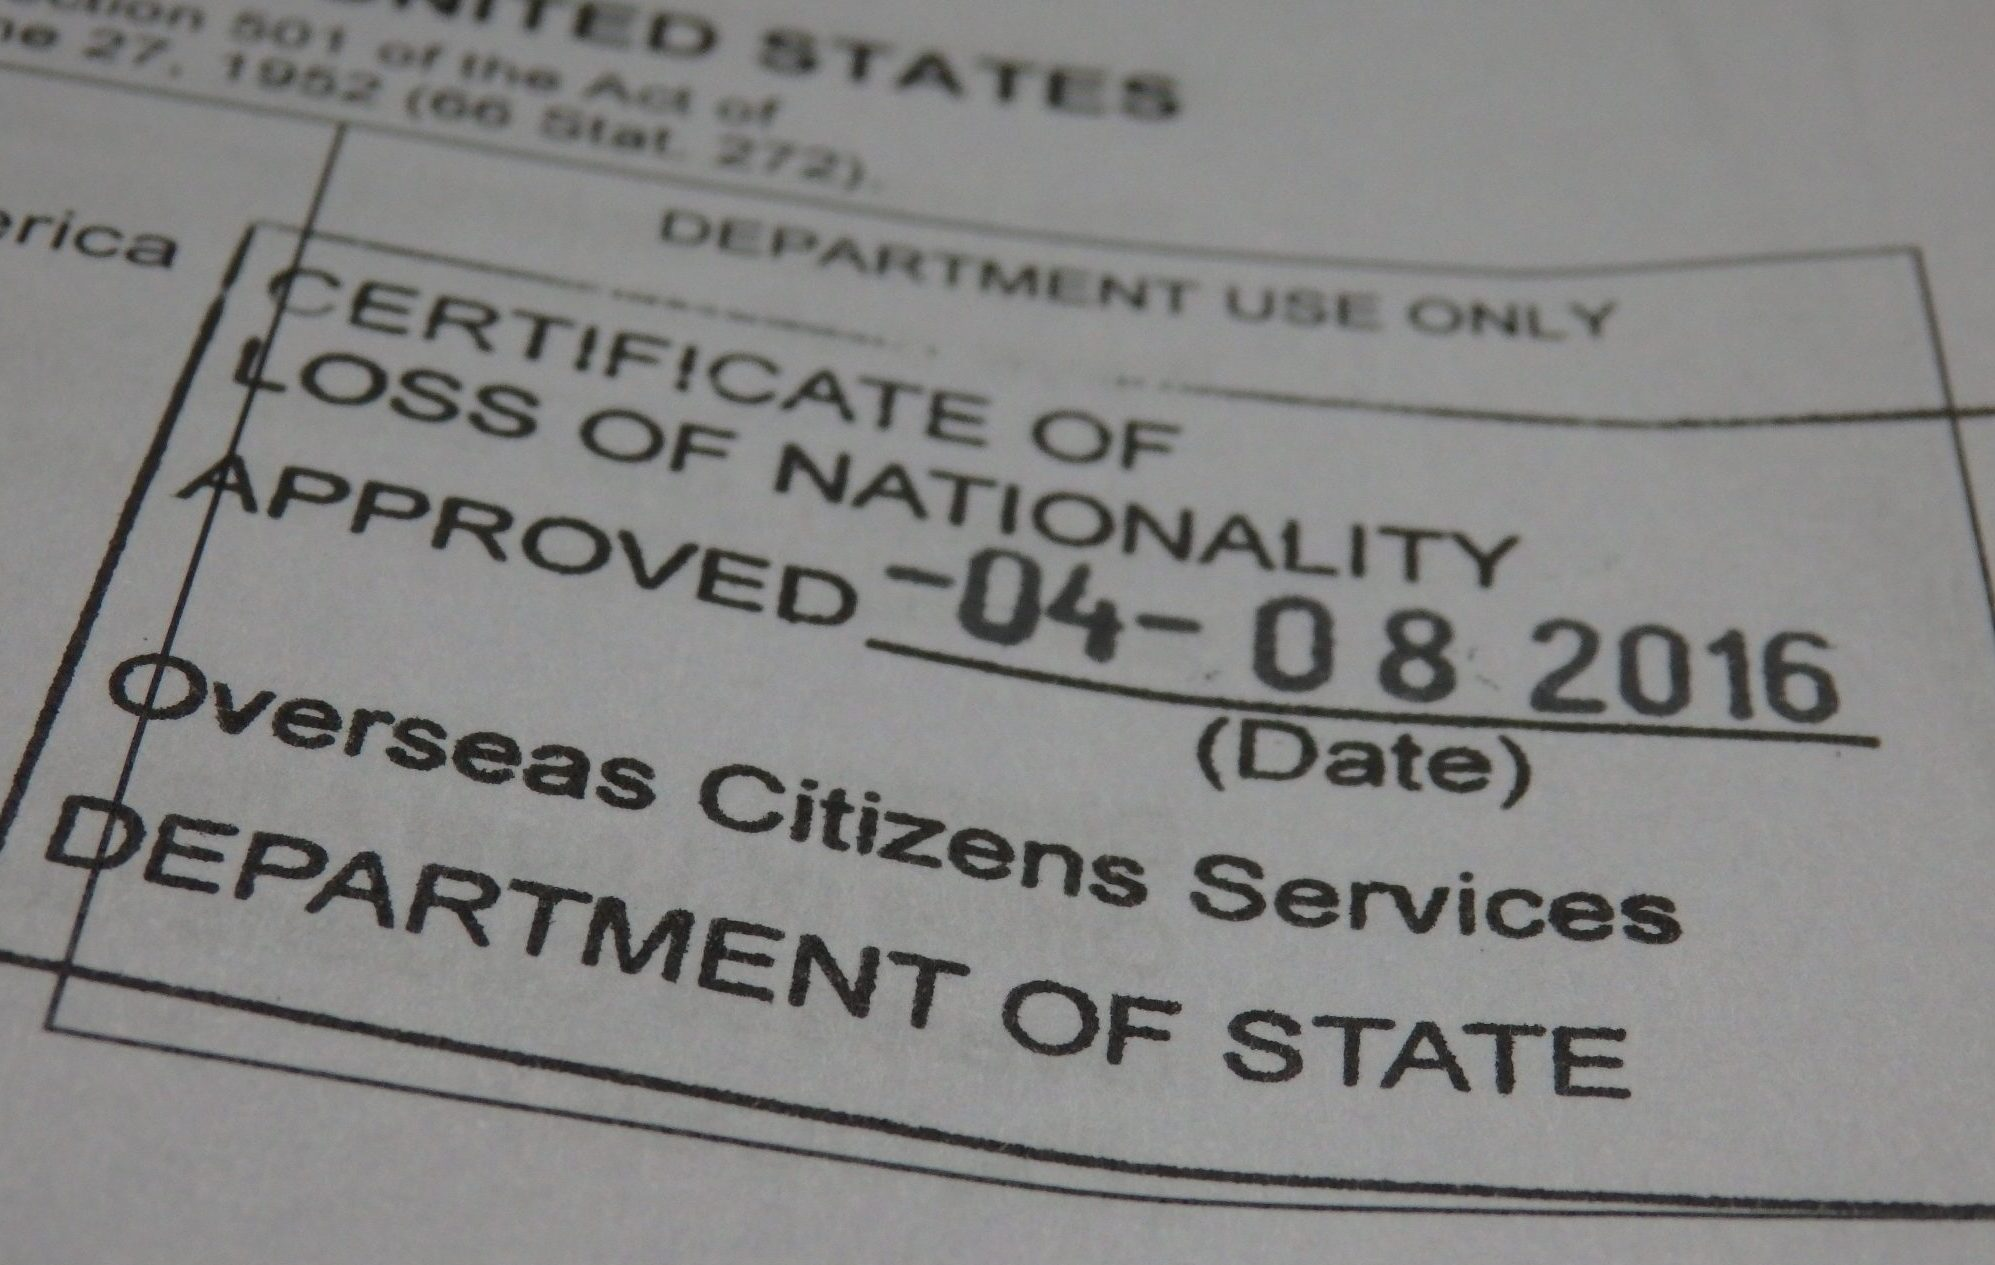 the State Department stamp on my Certificate of Loss of Nationality